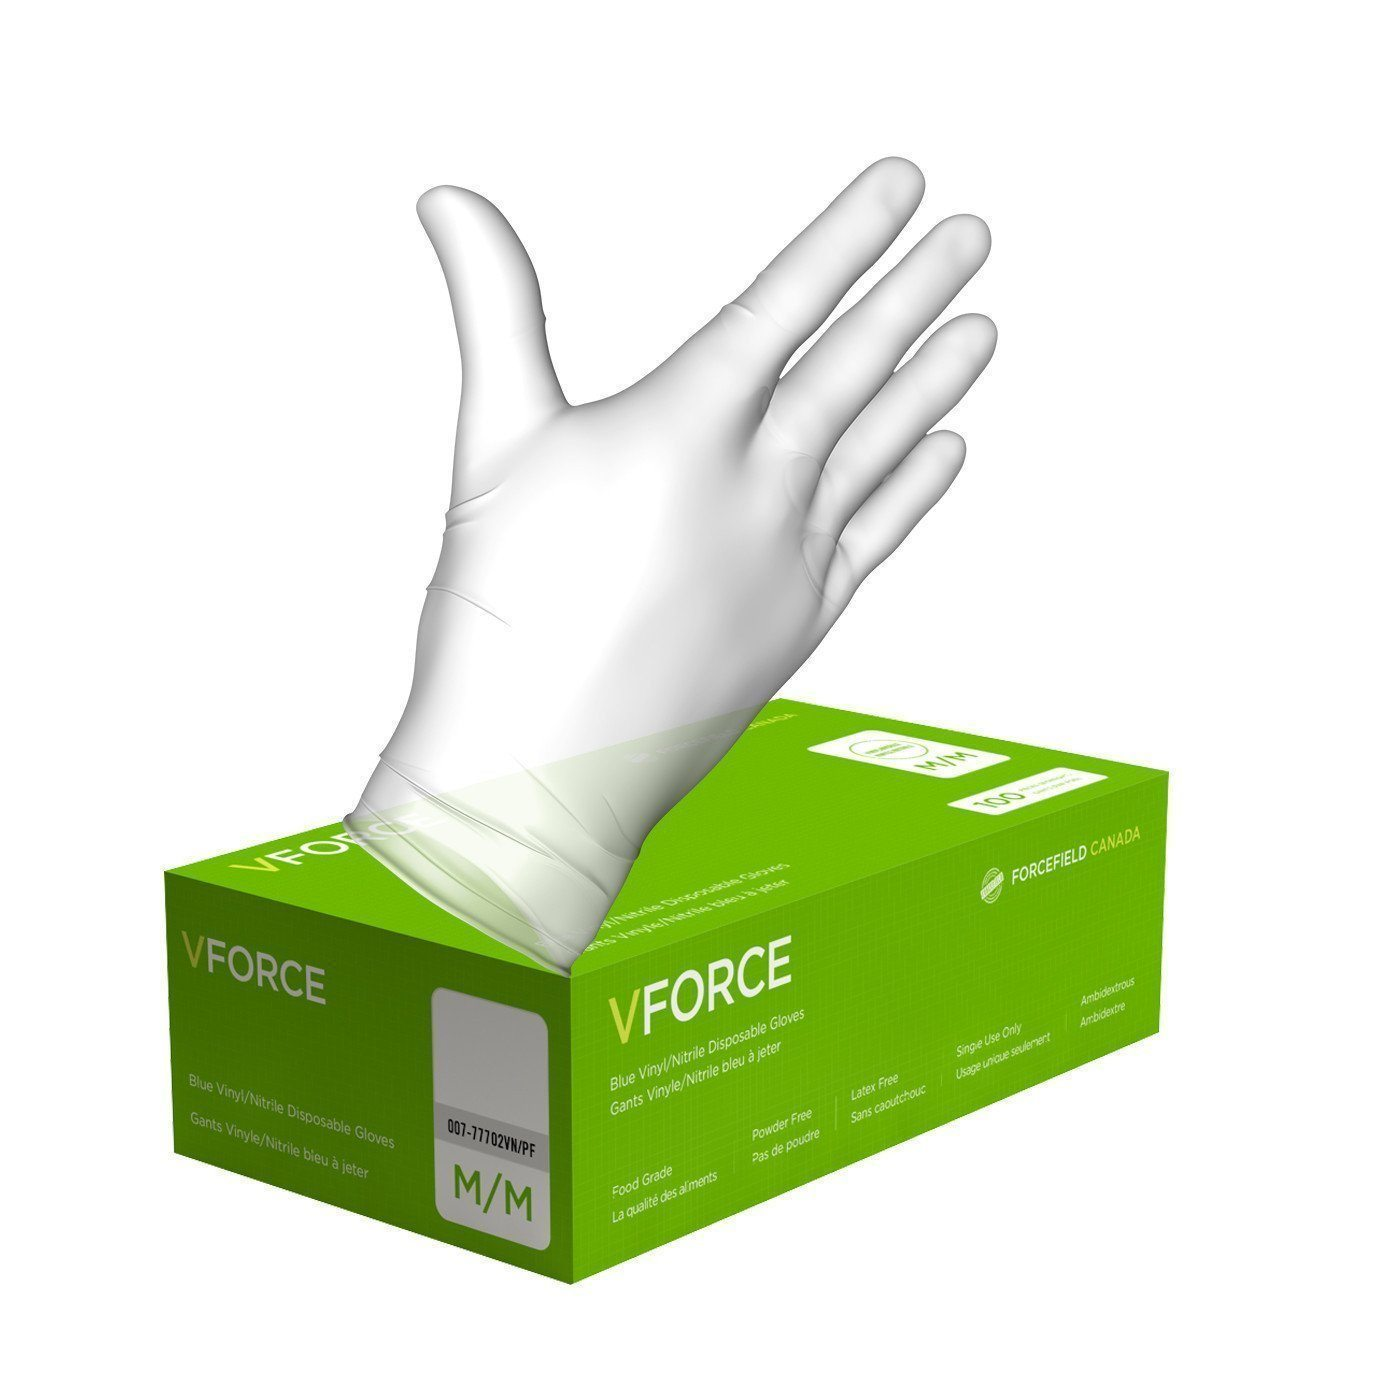 Gloves - Vinyl - Powder Free - Large (100/box)